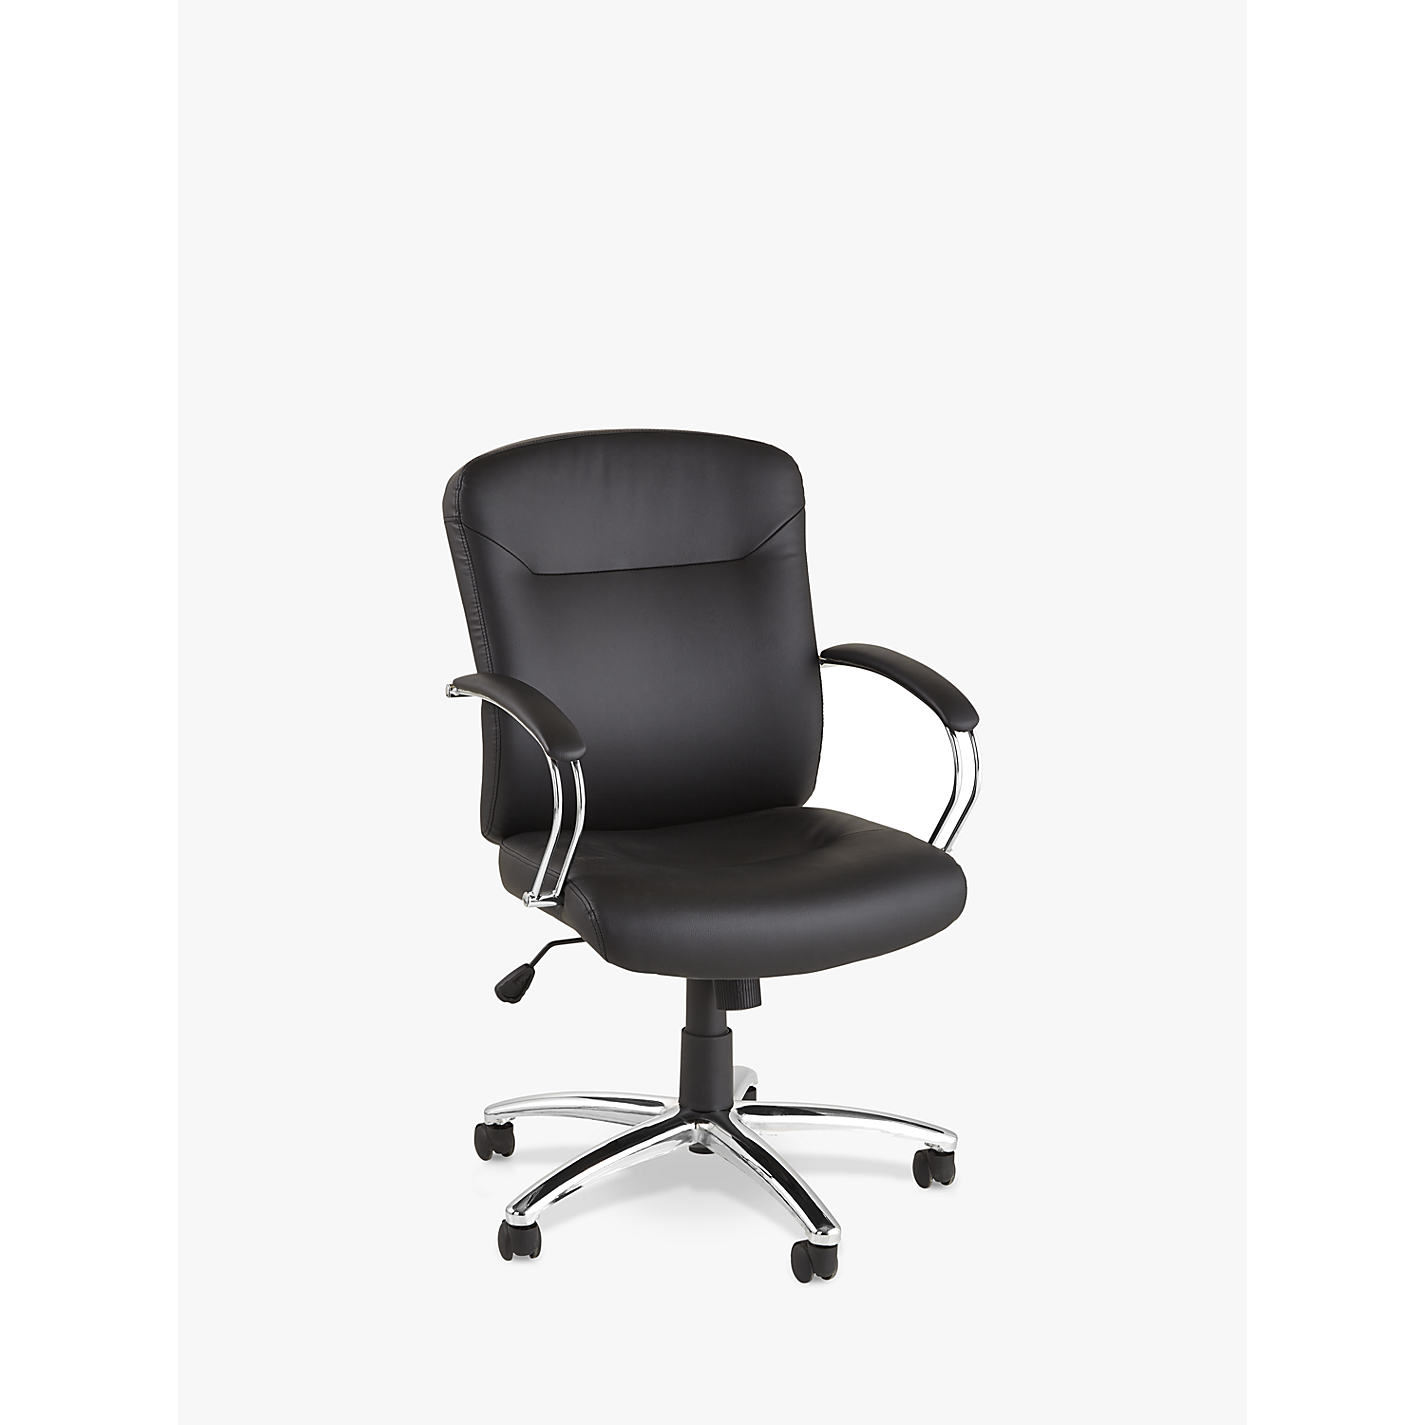 Buy John Lewis Warner Faux Leather Office Chair Online At Johnlewis.com ...